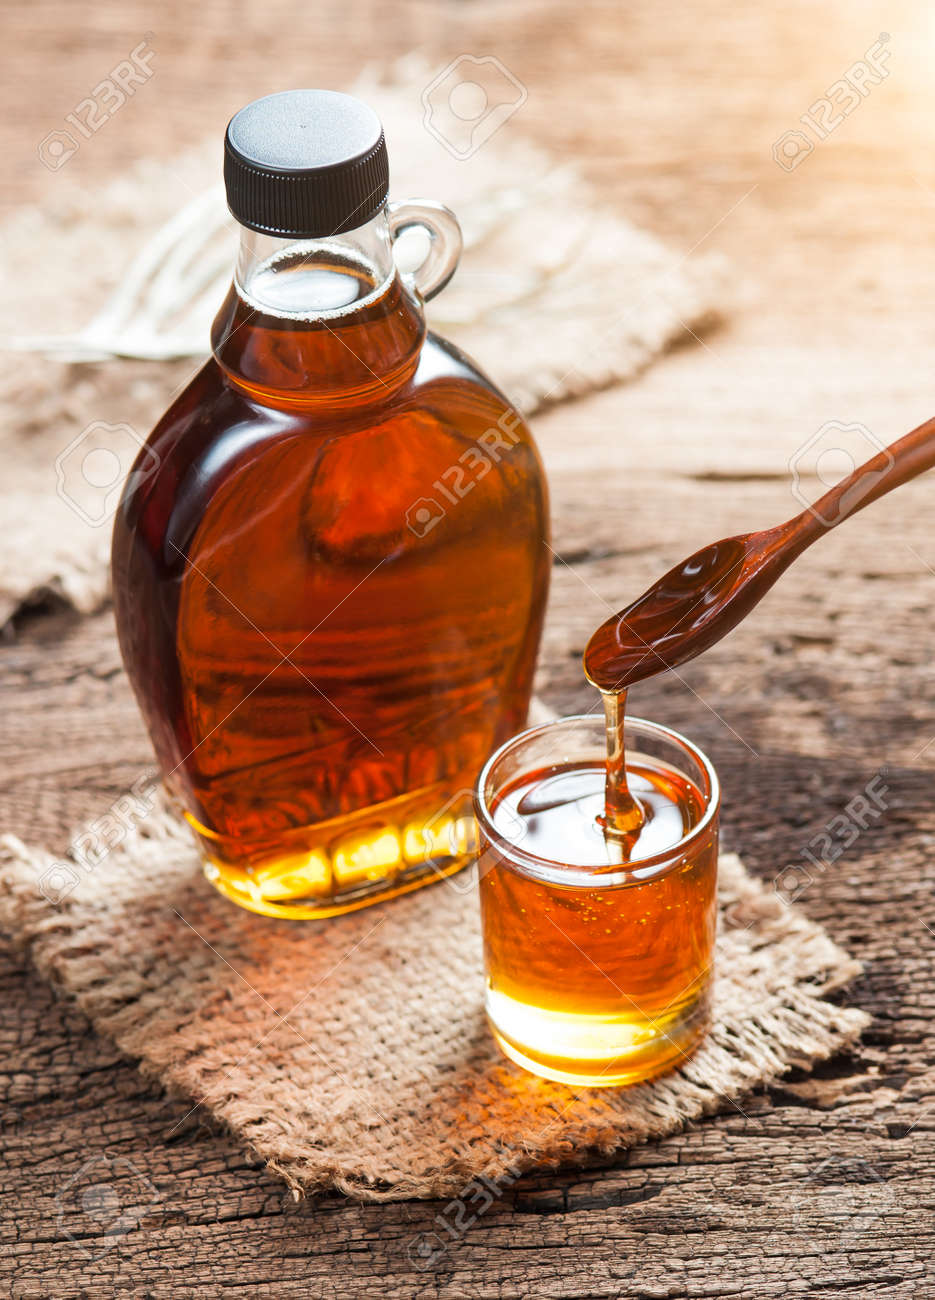 7a39ce783b1 maple syrup in glass bottle on wooden table Stock Photo - 48842222